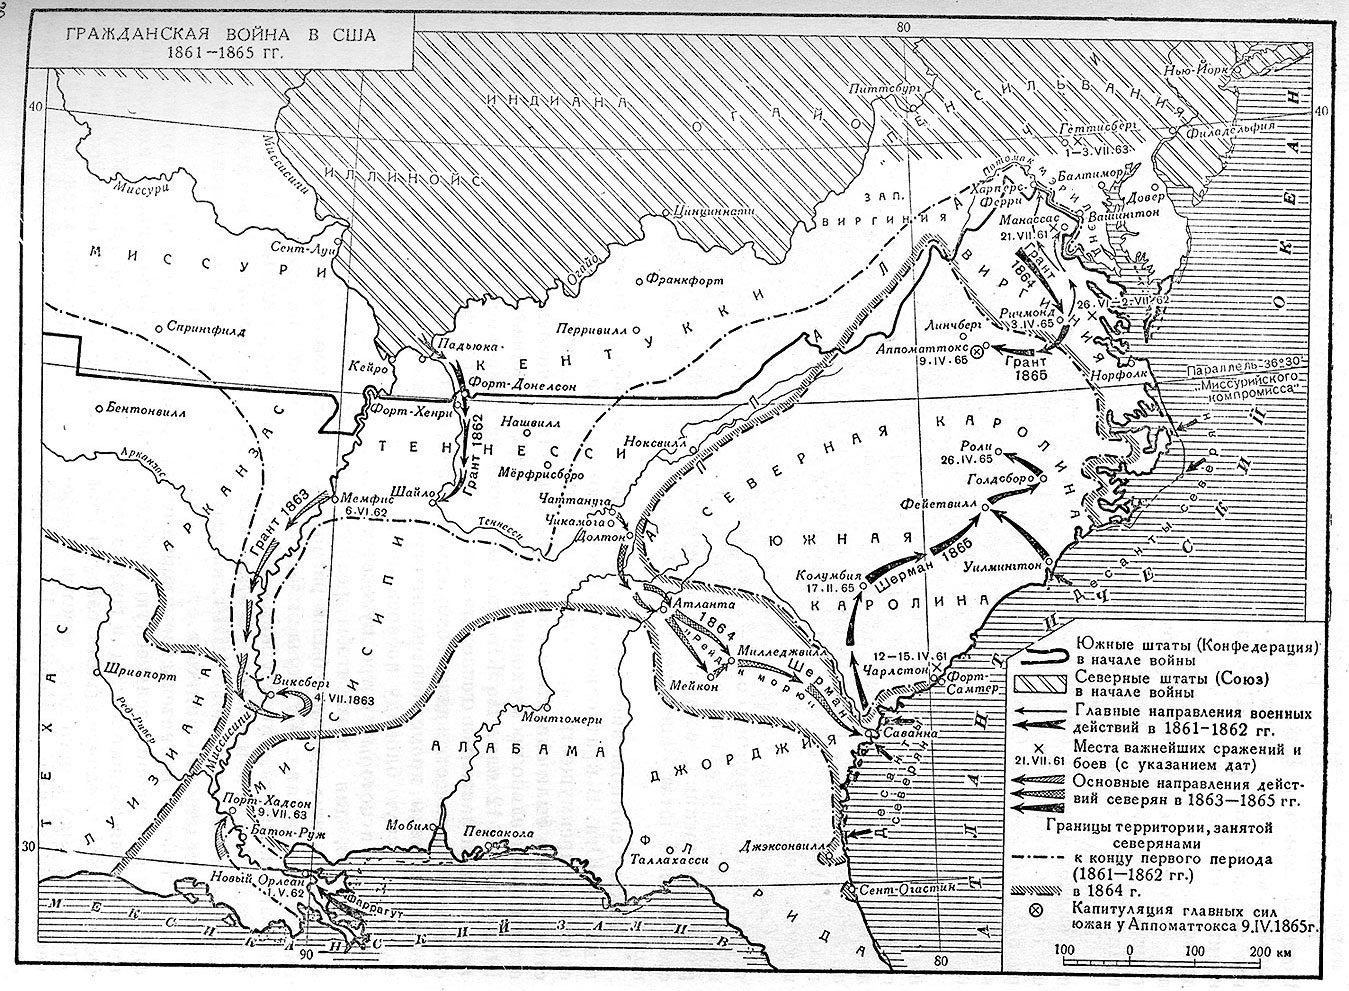 map of usa 1861 with Map003 on Gros Ventre as well Idiomas De Italia additionally Map Of The Us In Civil War additionally Colorado furthermore Indexofmaps.